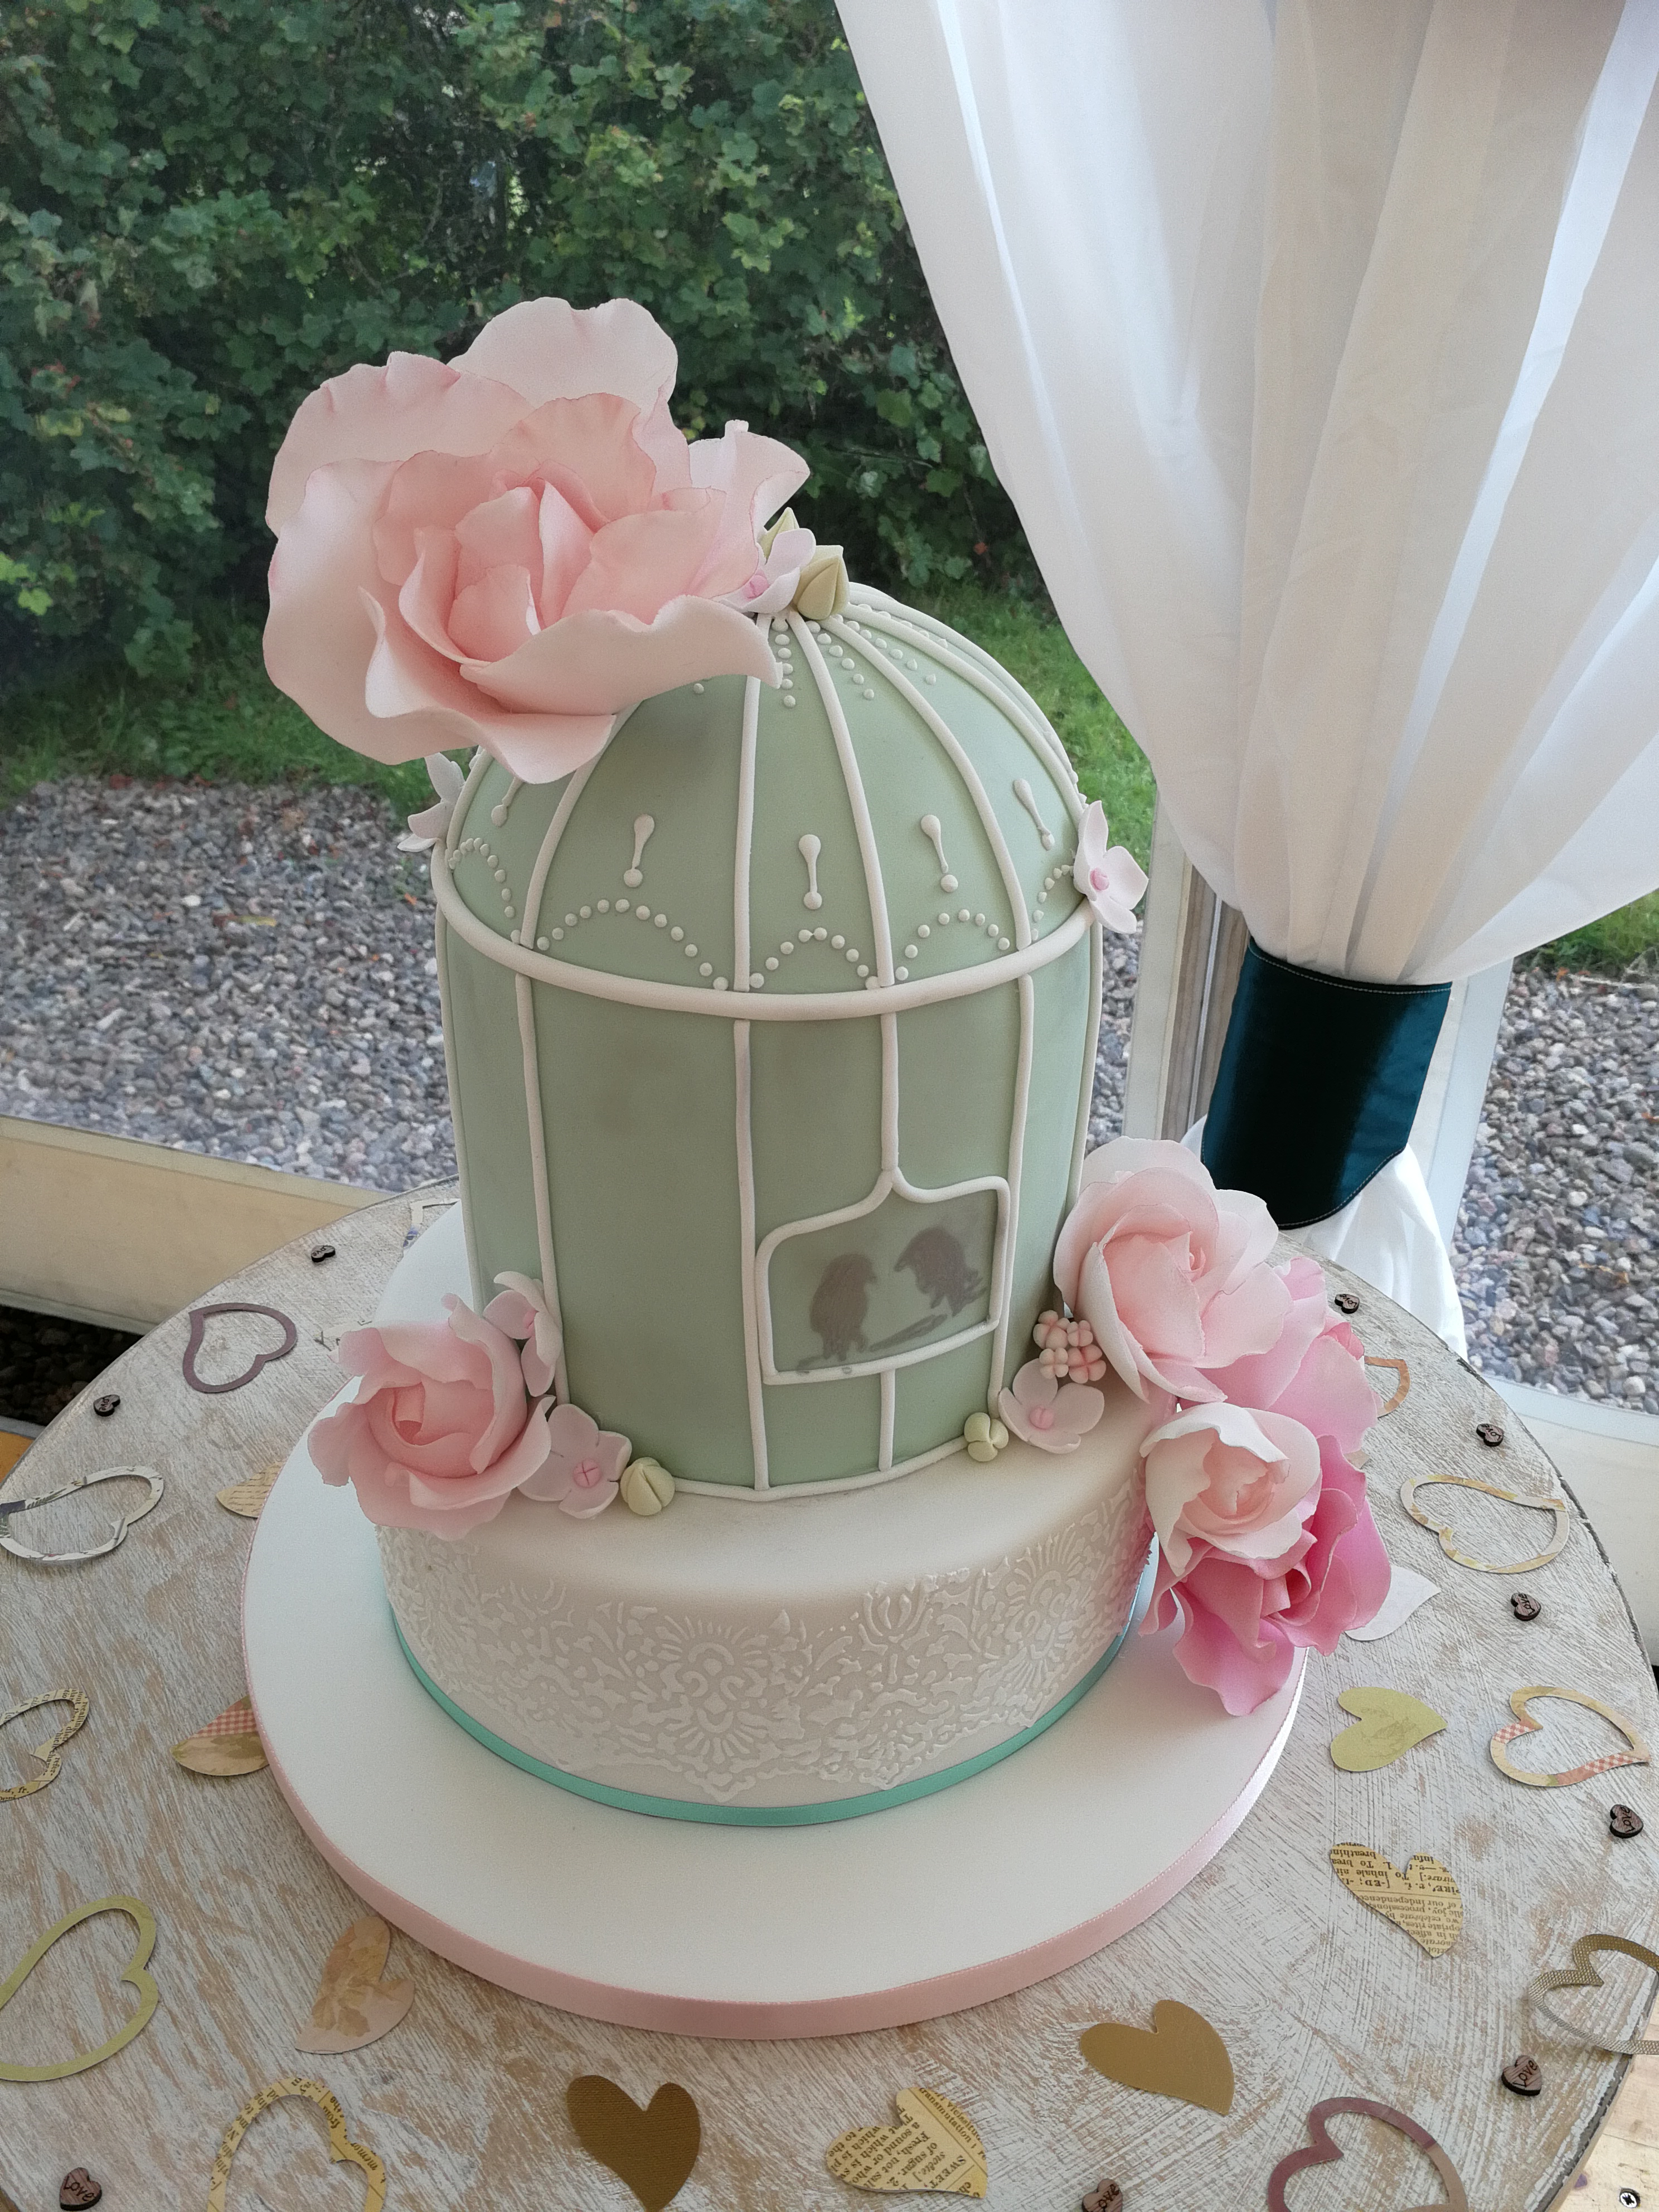 Birdcage wedding cake with lace detail and pink sugar flowers